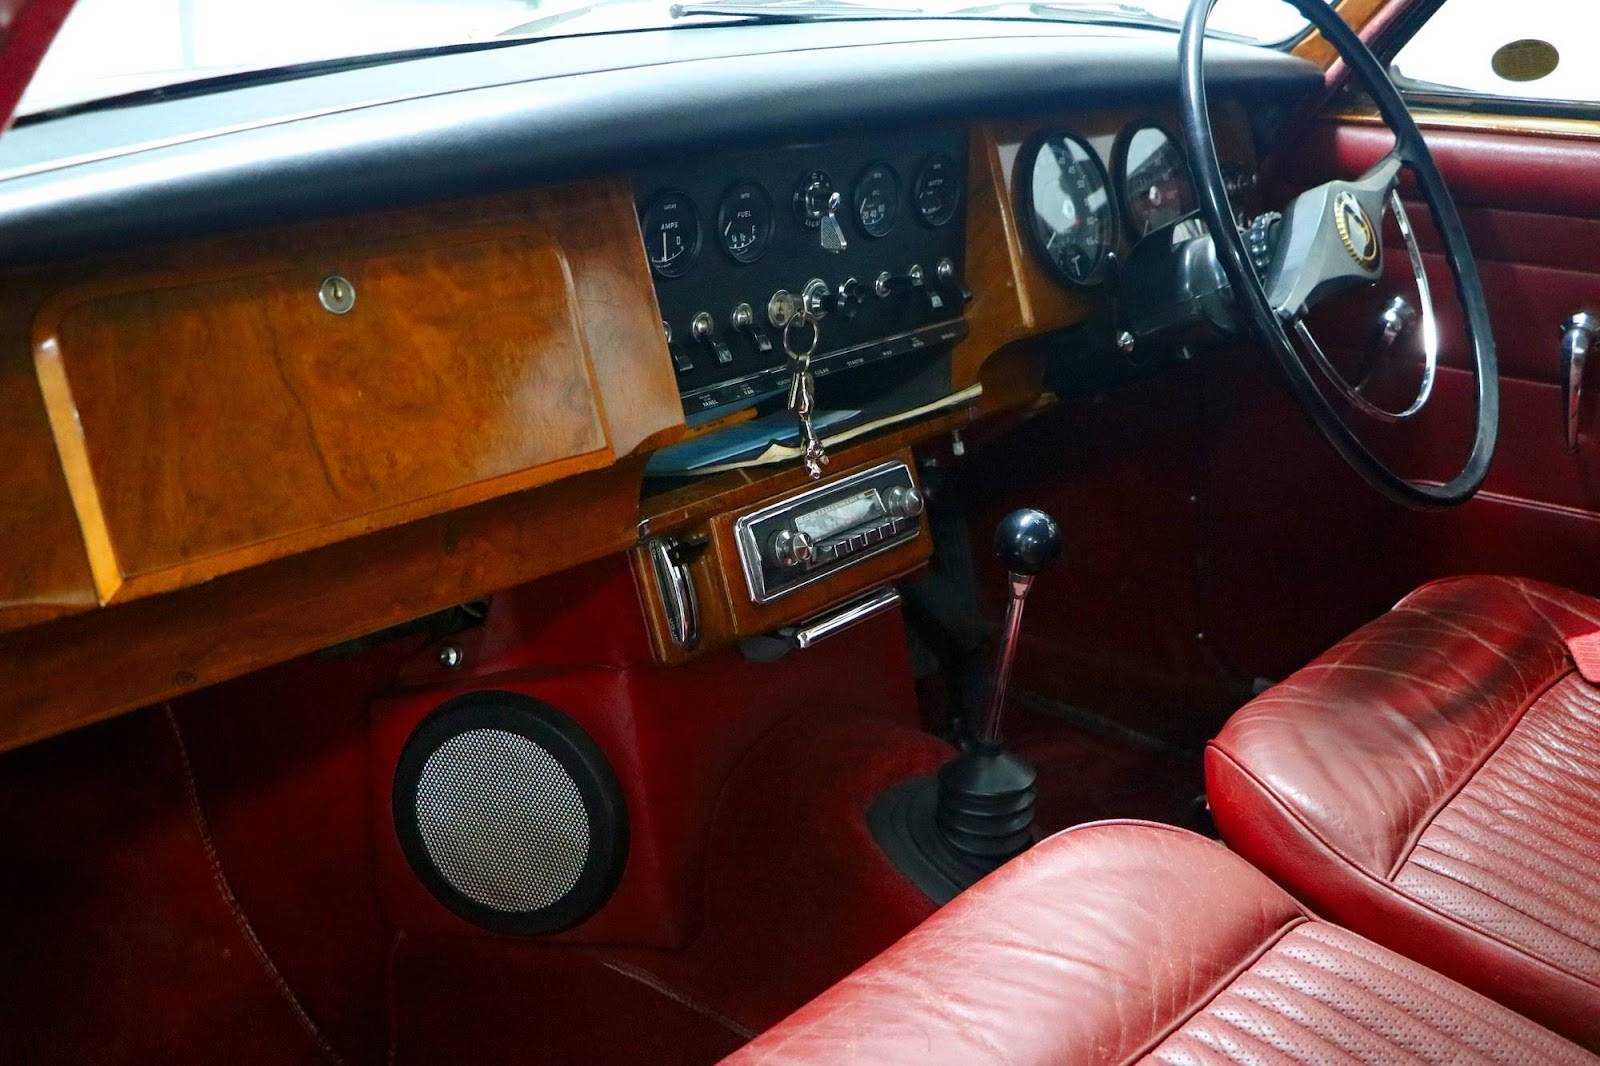 Carl_Lindner_Collection - Jaguar XK150 Coupe Interior.jpg